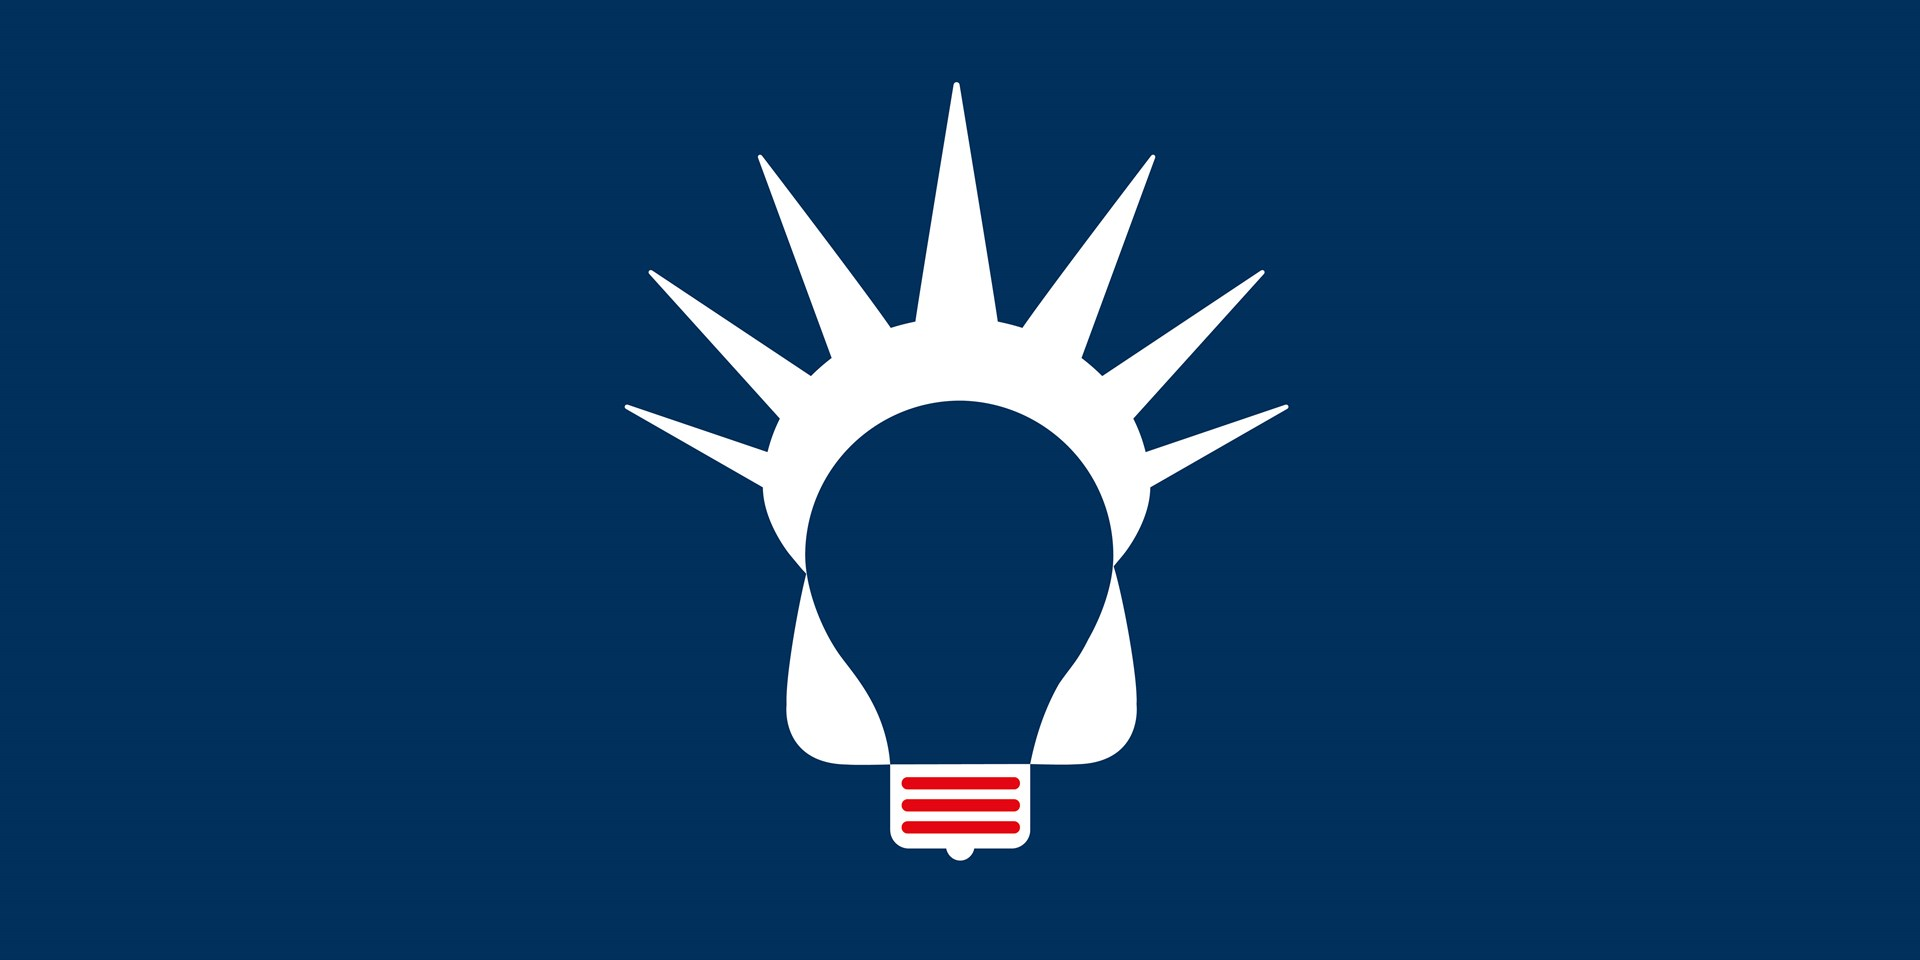 An illustration concept of a lightbullb and the Statue of Liberty